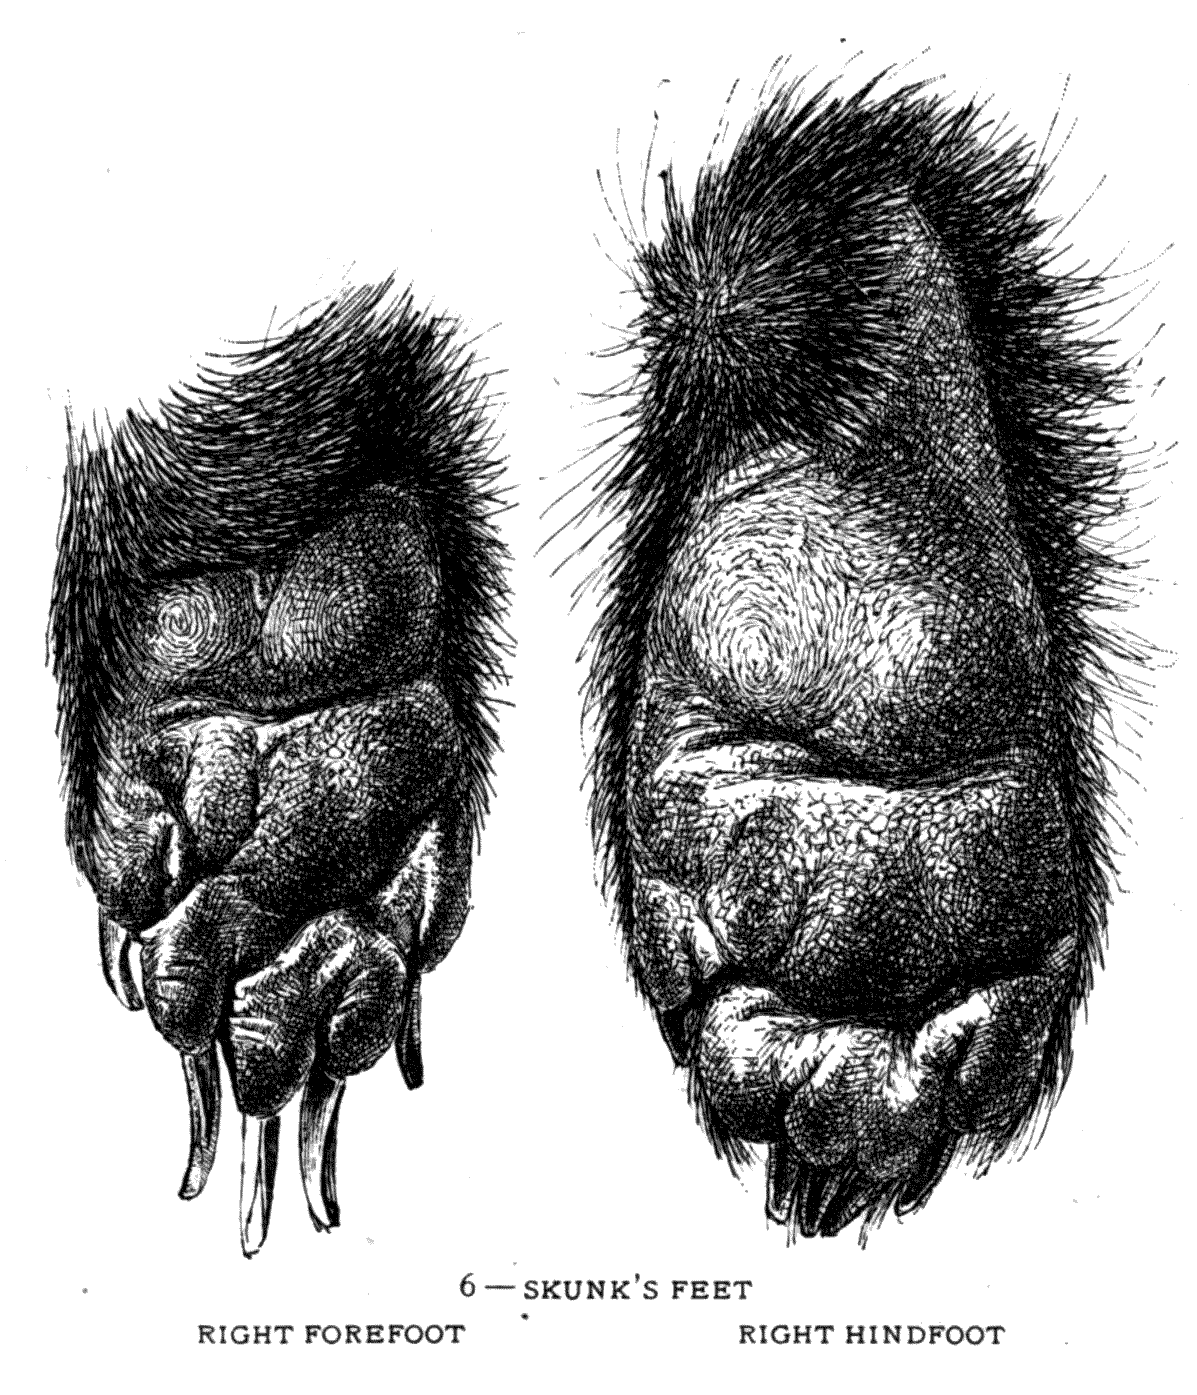 6 – SKUNK'S FEET (LEFT) RIGHT FOOT) AND (RIGHT) RIGHT HINDFOOT